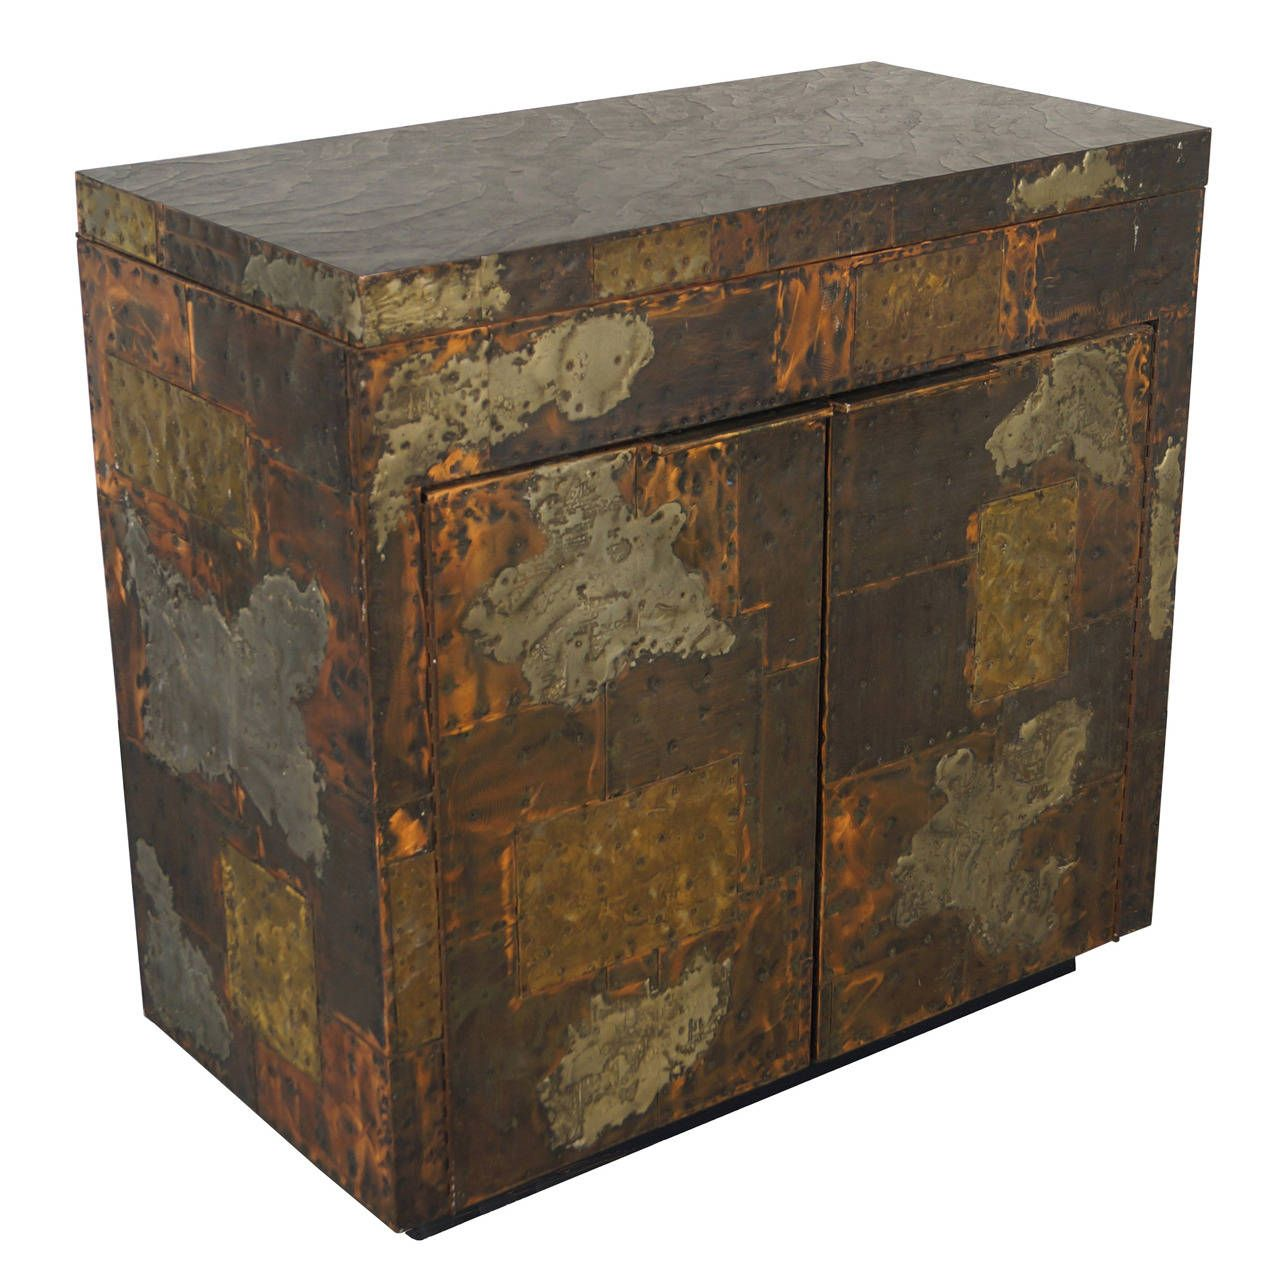 Exceptional Patchwork Flip-Top Bar Cabinet by Paul Evans | From a unique collection of antique and modern dry bars at https://www.1stdibs.com/furniture/storage-case-pieces/dry-bars/